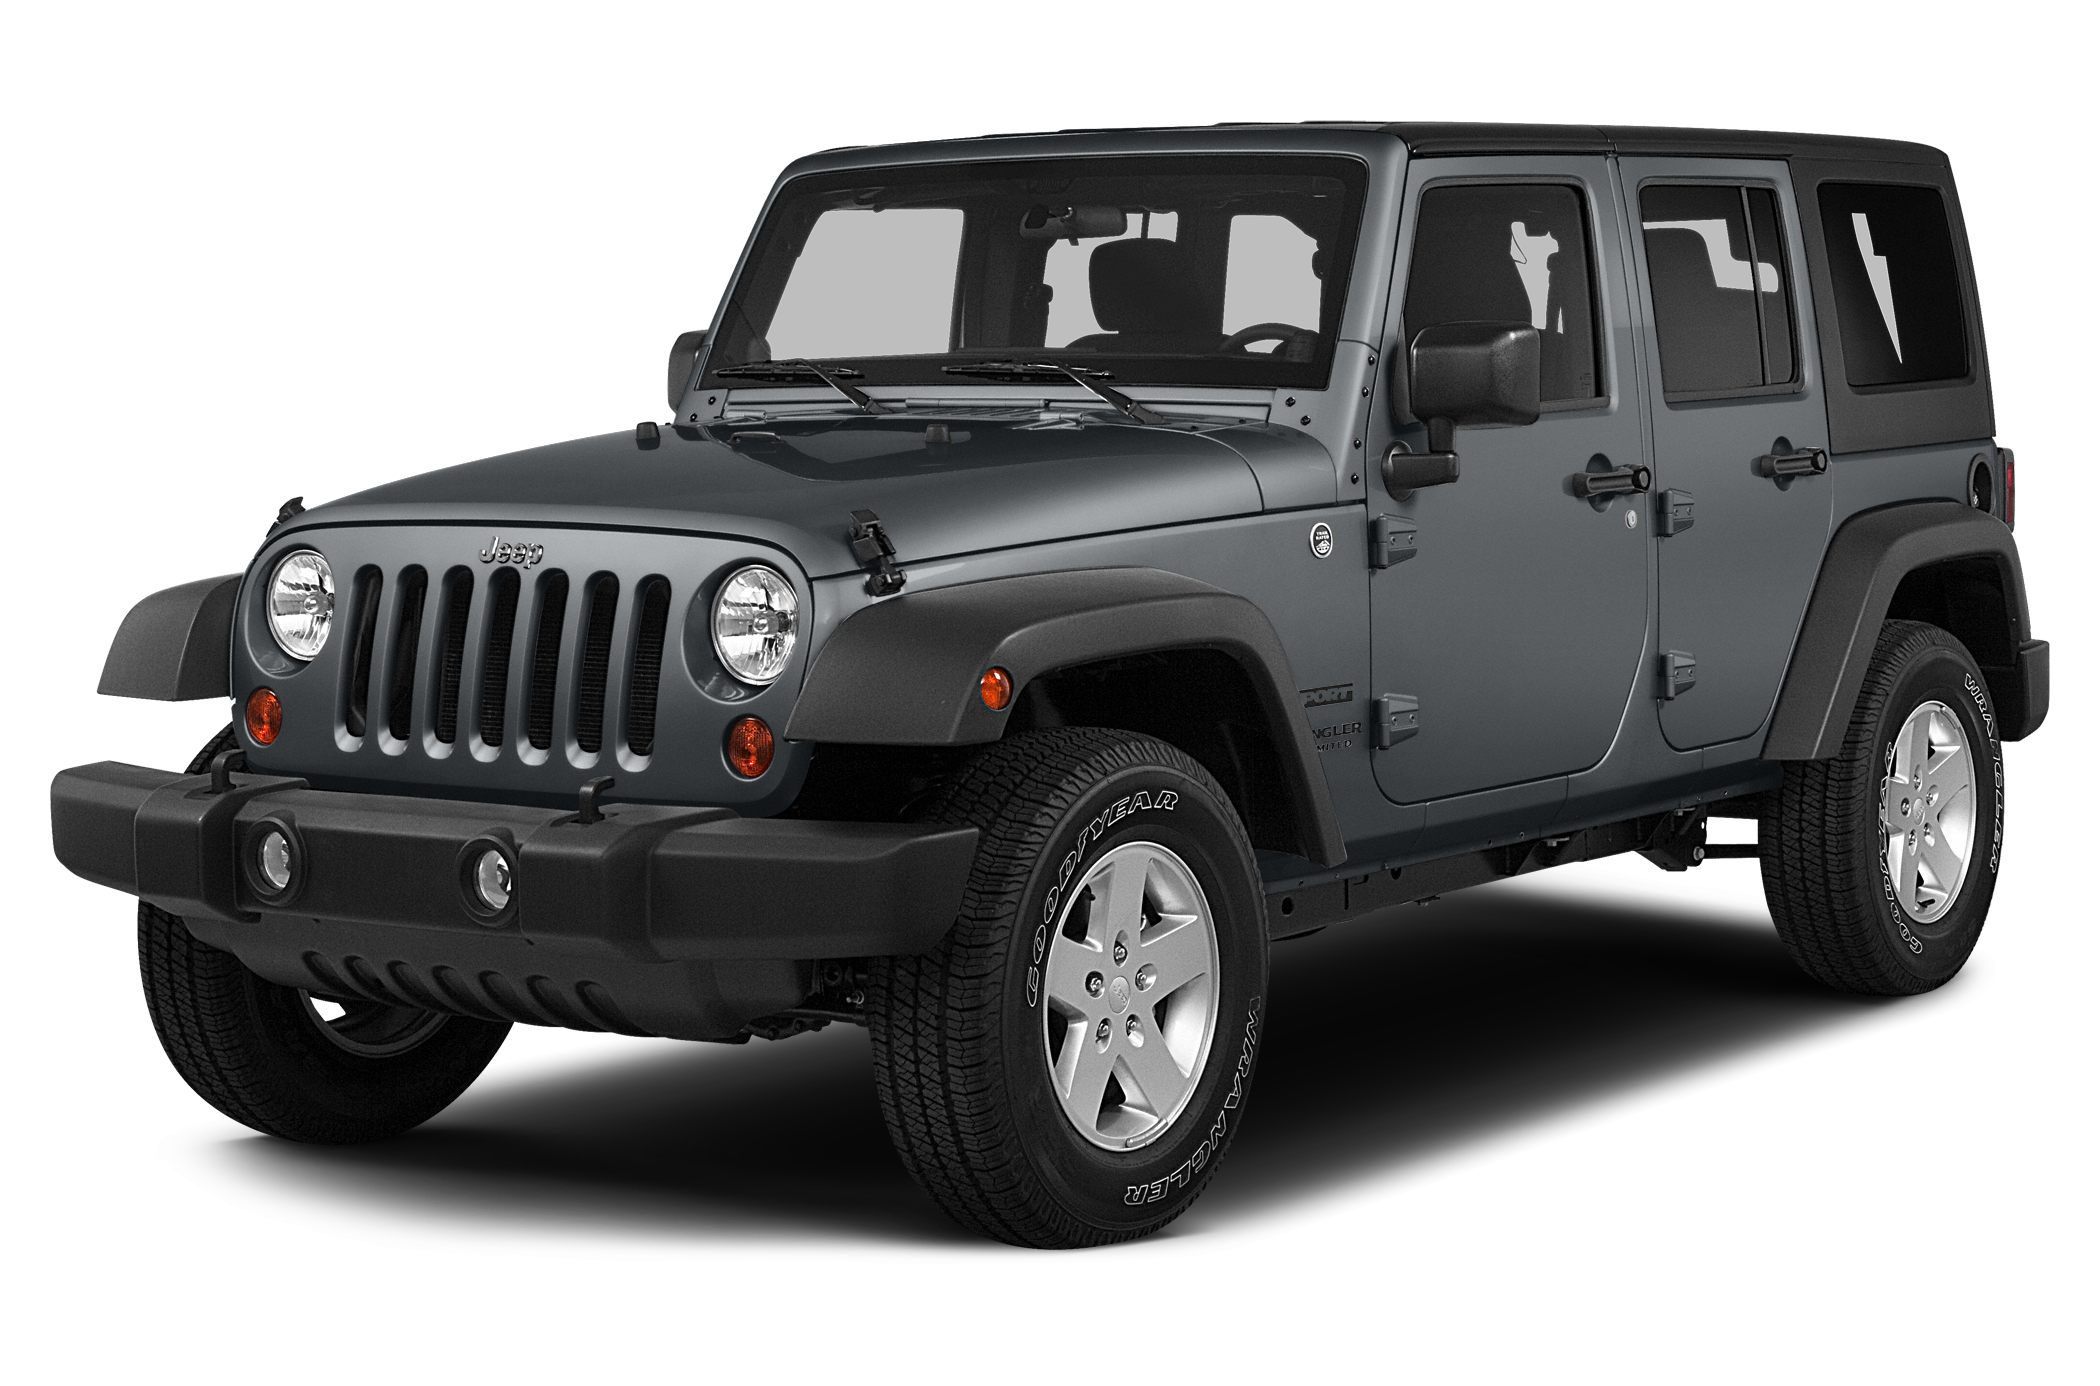 2013 jeep wrangler unlimited rubicon 4dr 4x4 pricing and options